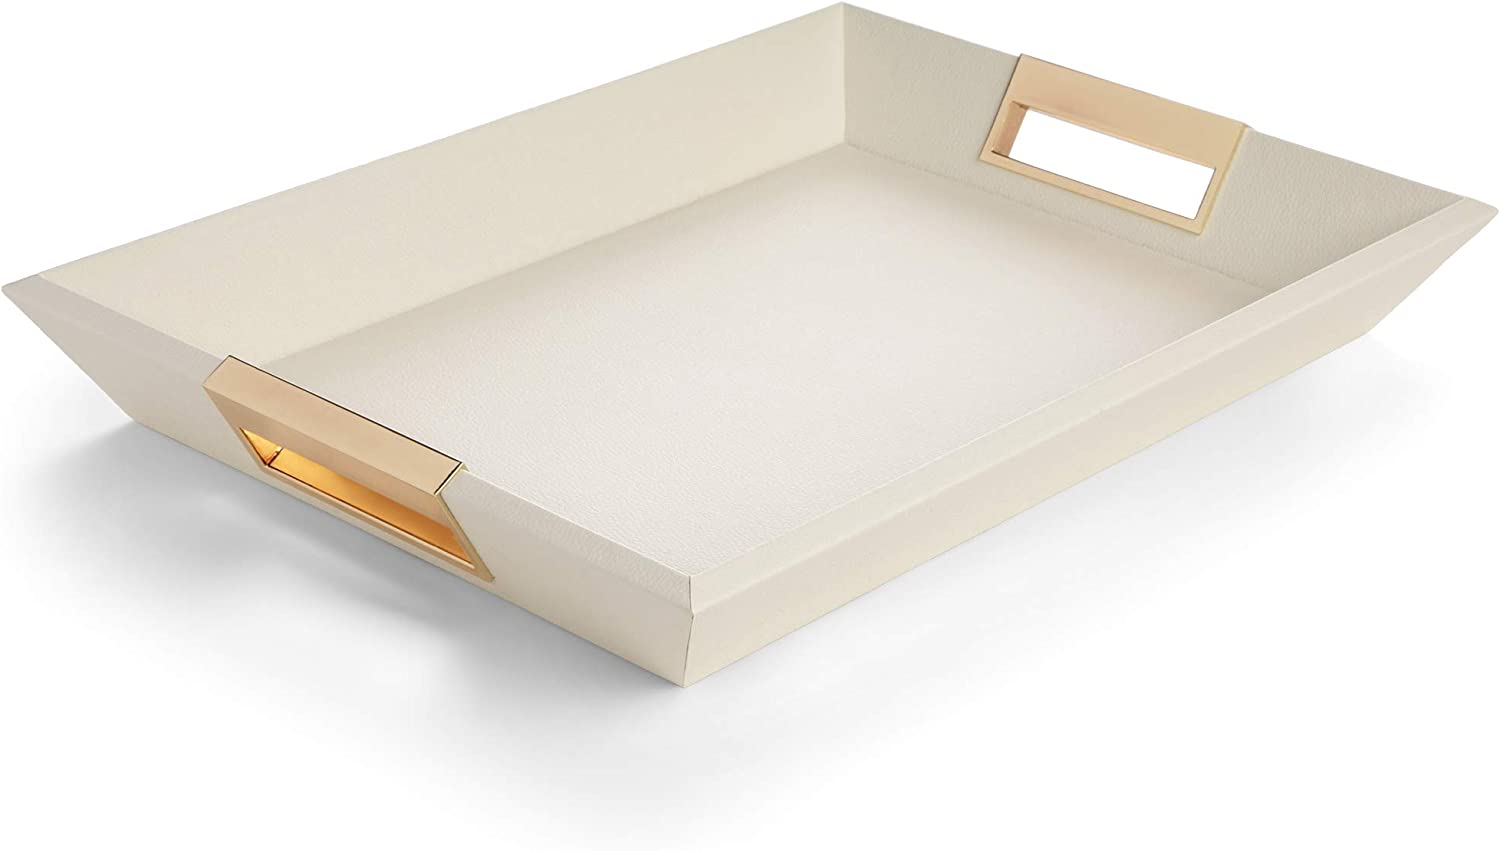 Decorative Wooden Serving Tray - Coffee Table Decor, Bed and Ottoman Tray to Serve Food and Tea, Dining Table Centerpieces - White Wood with Gold Metal Handles, Non-Scratch Velvet Bottom